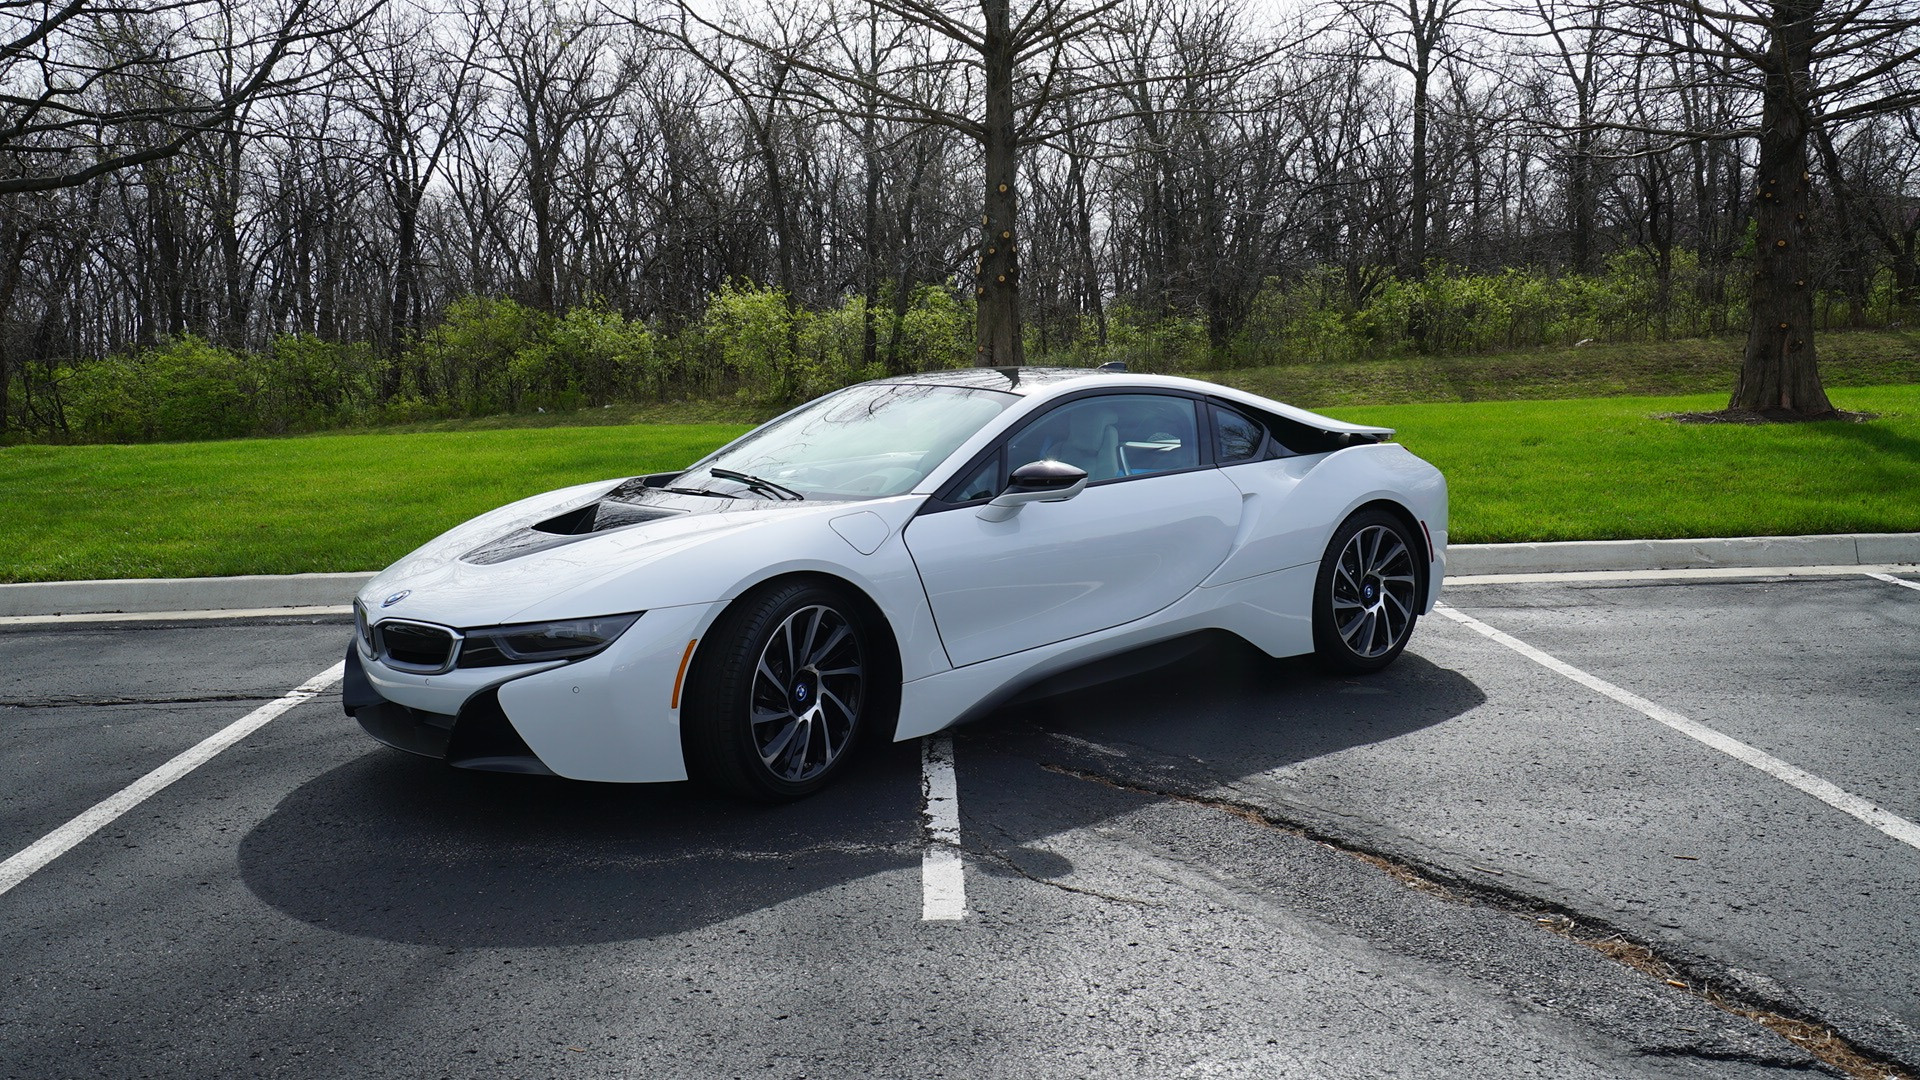 BMW I For Sale Global Autosports - 2015 bmw i8 for sale